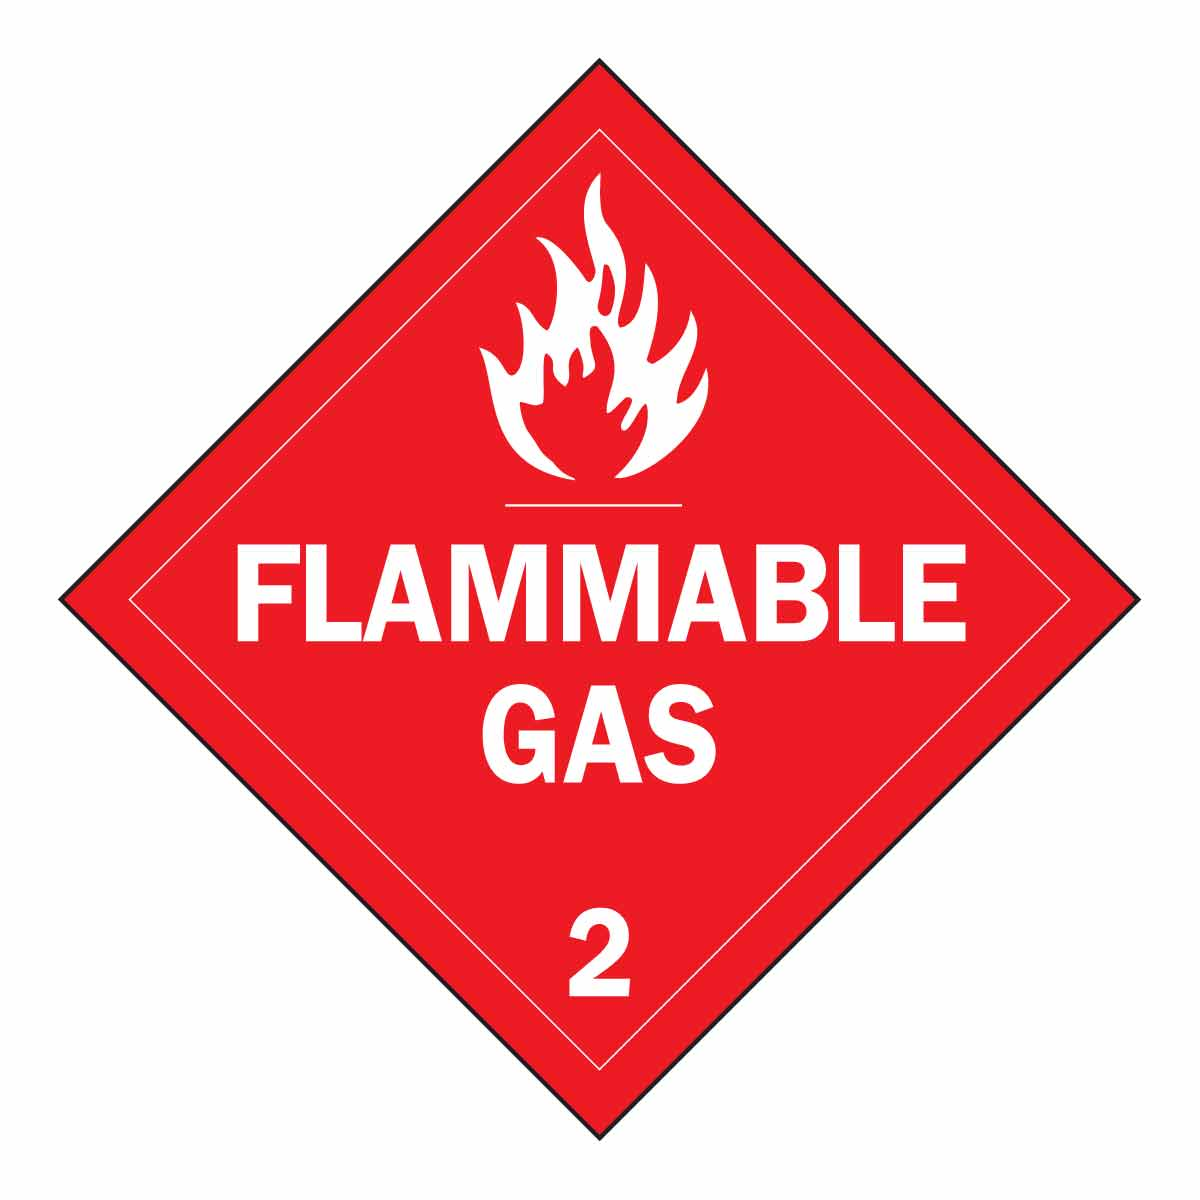 Brady® 63442 Diamond Vehicle Placard Sign, FLAMMABLE GAS 2 Legend, Red on White, 10-3/4 in H, B-101 Polycoated Tagstock